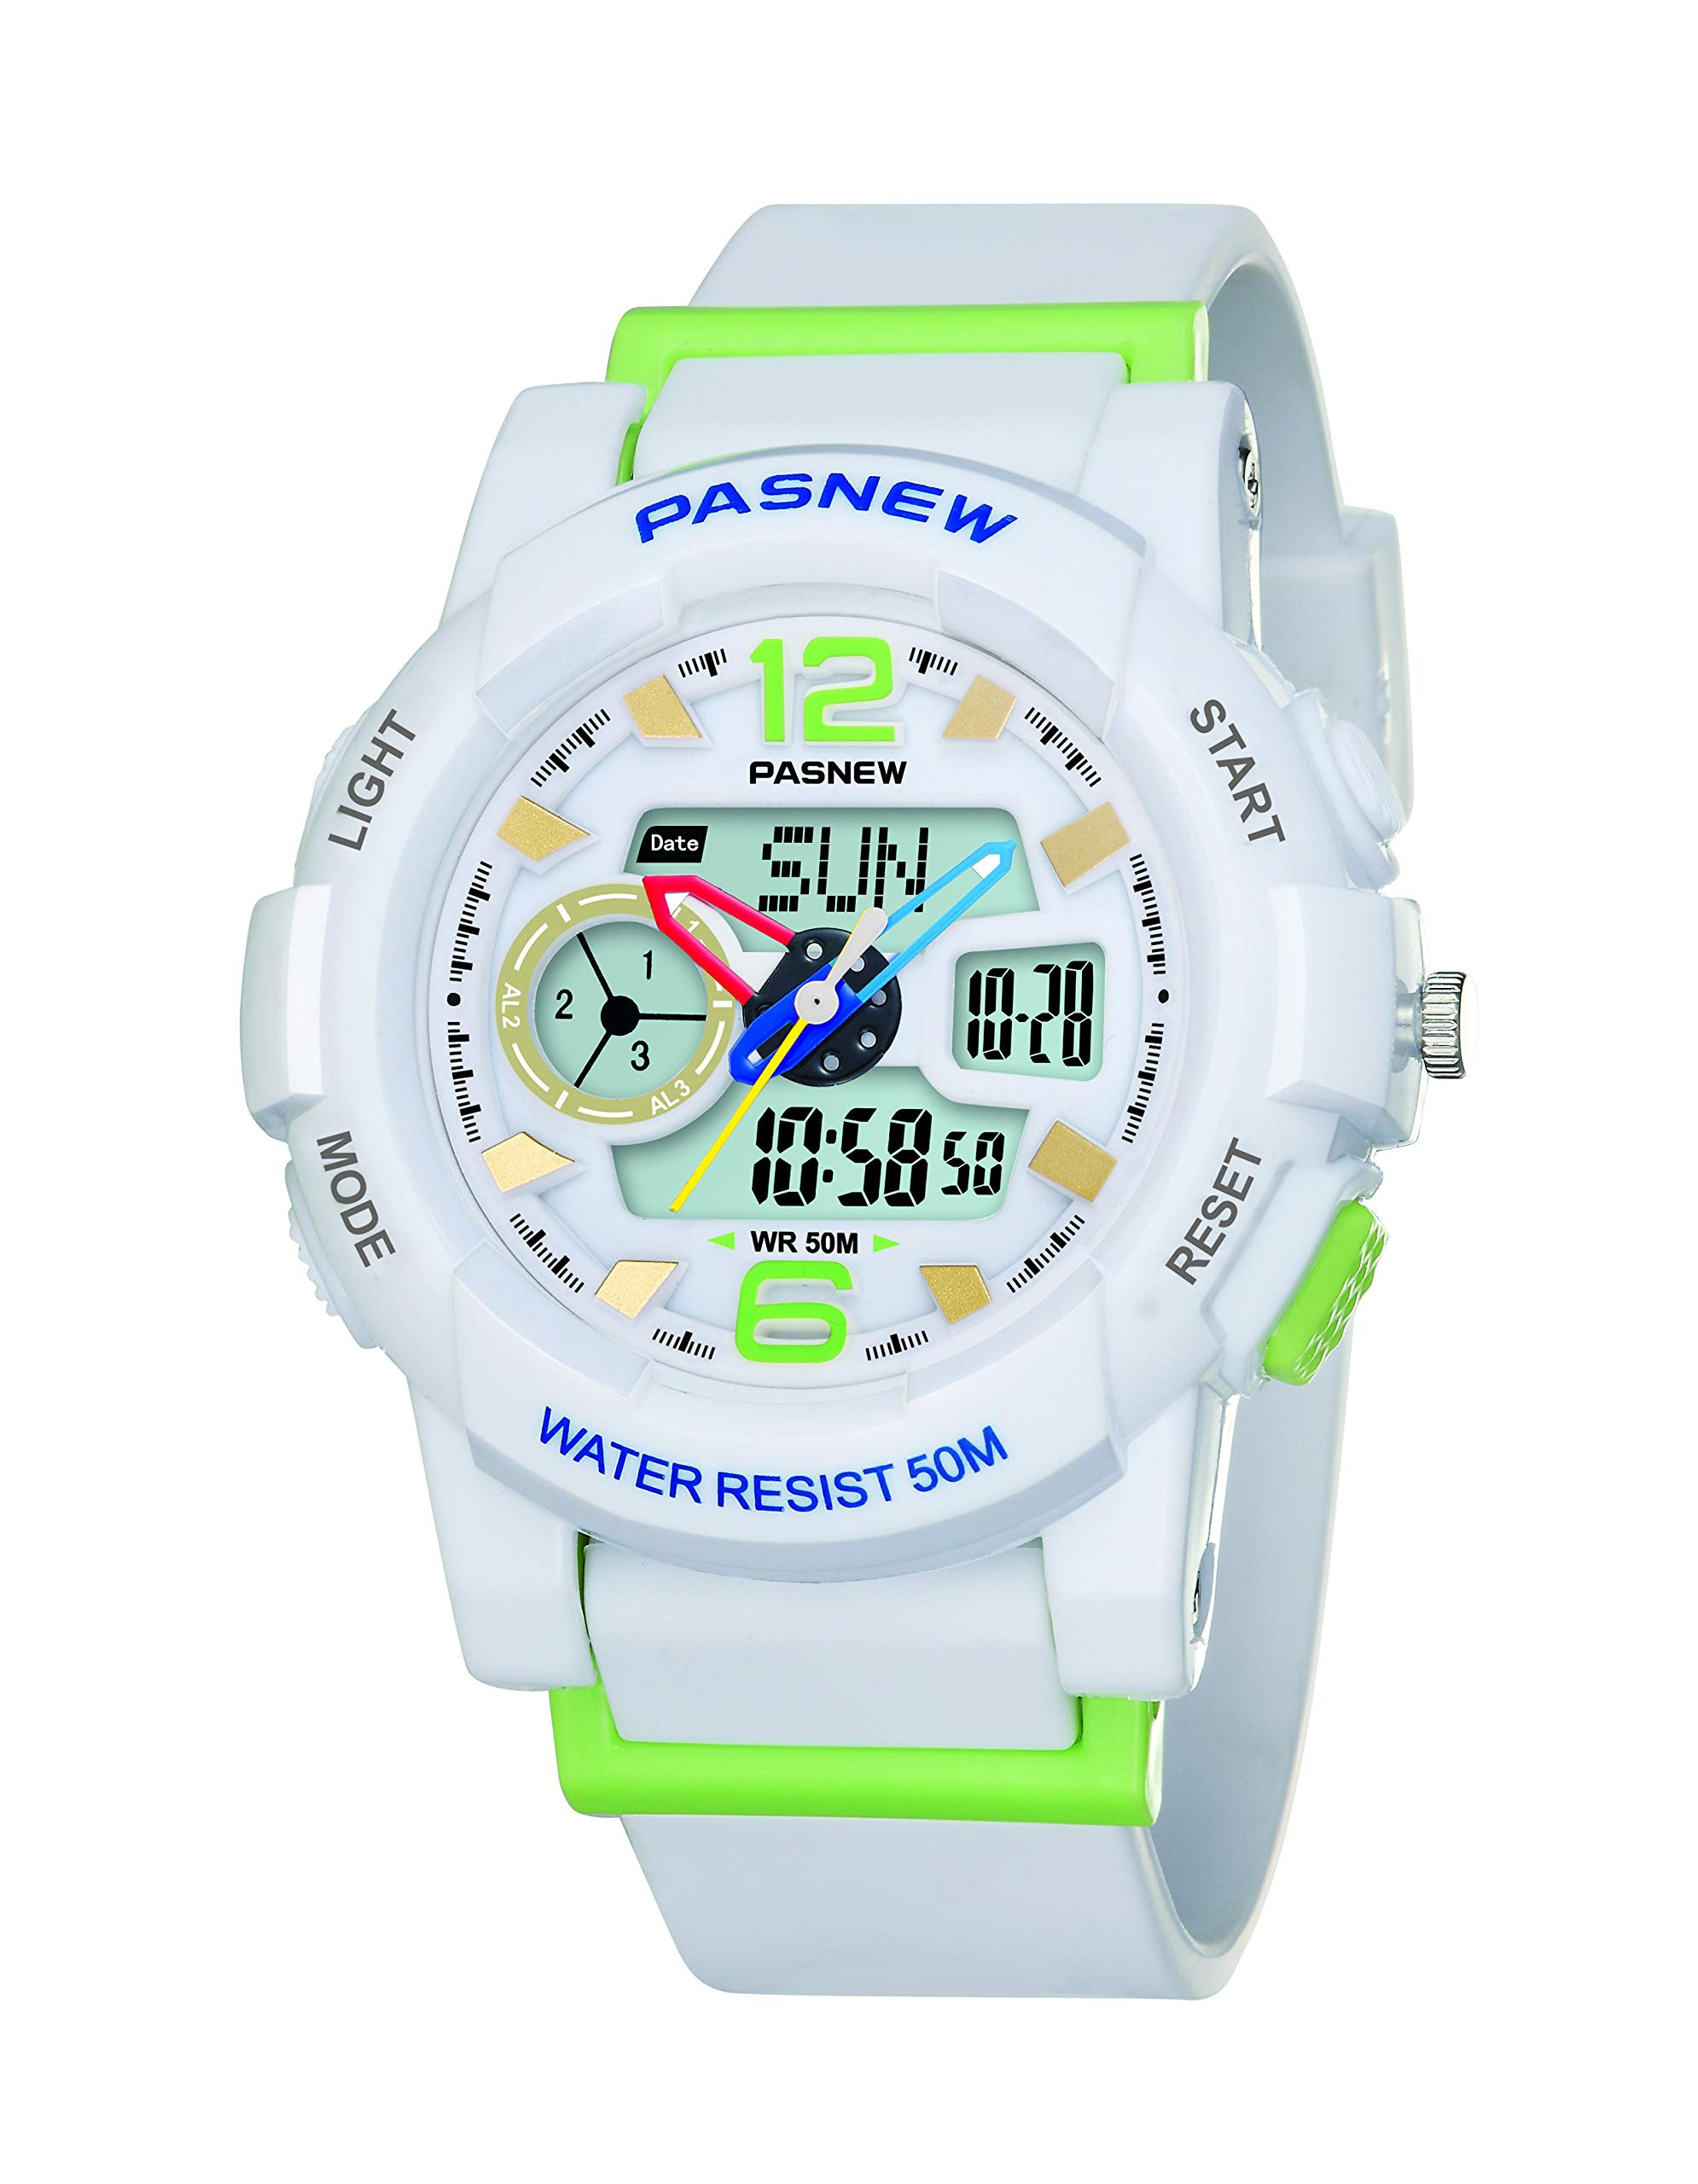 PASNEW Kid Watch Multi Function Digital-Analog Sport Watches for 8-Year Old or Above Children-White